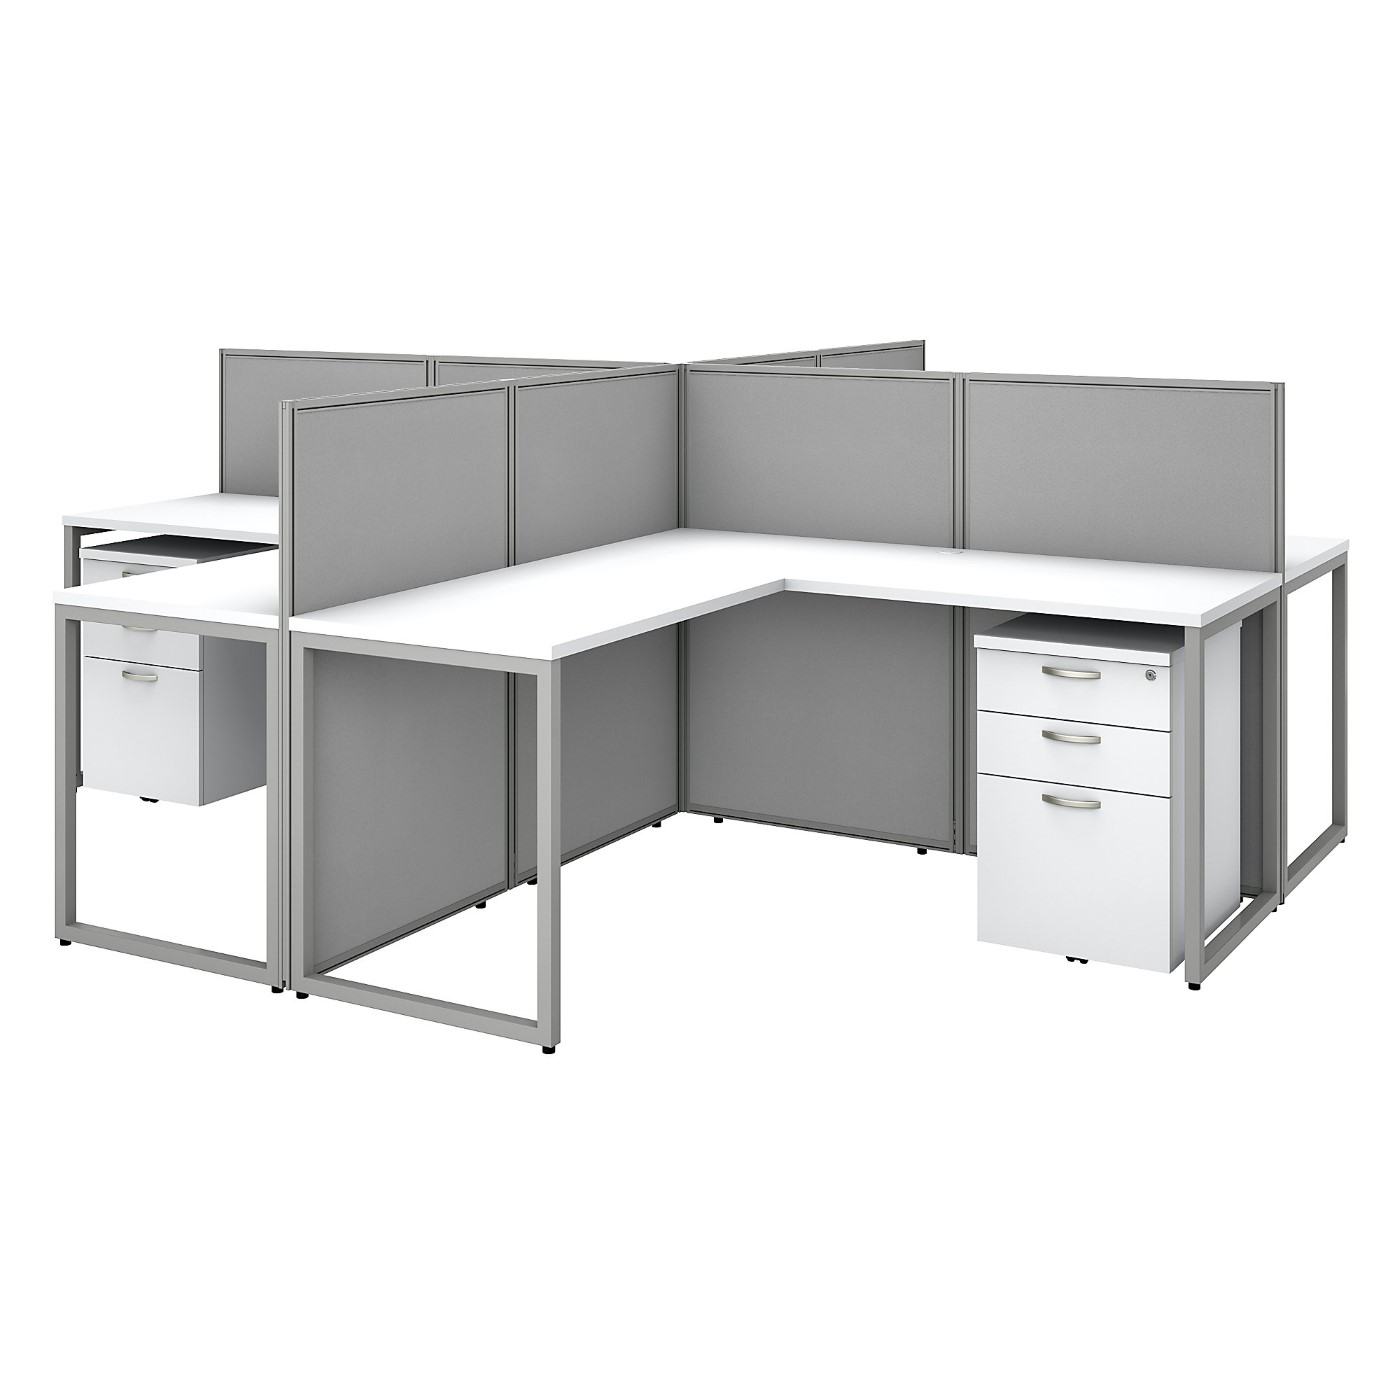 BUSH BUSINESS FURNITURE EASY OFFICE 60W 4 PERSON L SHAPED CUBICLE DESK WITH DRAWERS AND 45H PANELS. FREE SHIPPING SALE DEDUCT 10% MORE ENTER '10percent' IN COUPON CODE BOX WHILE CHECKING OUT. ENDS 5-31-20.